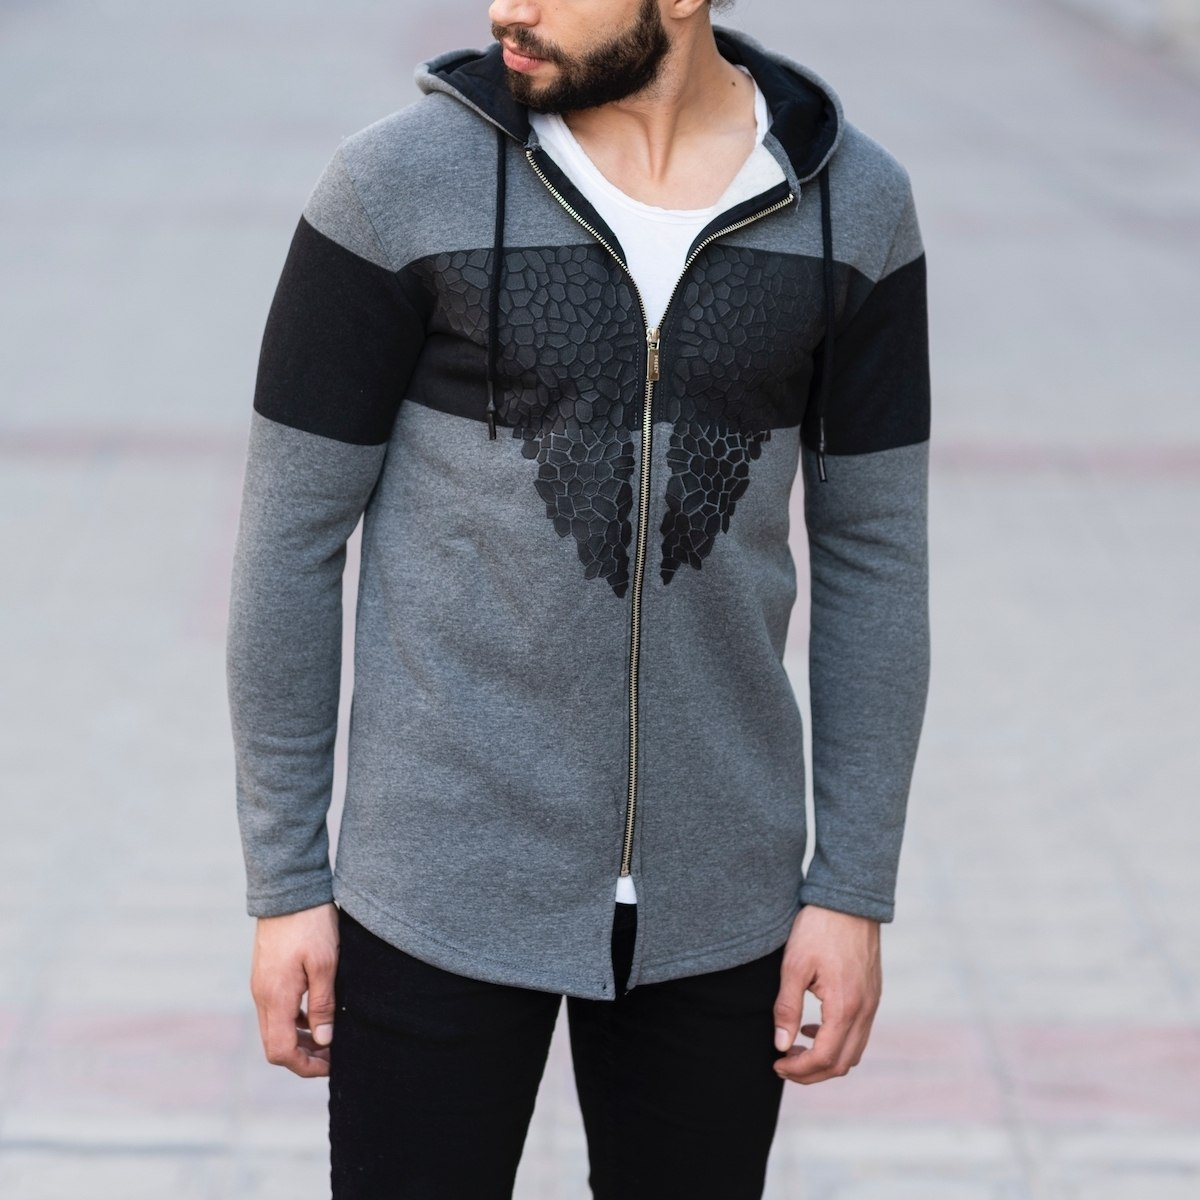 Autumn Collection Jacket in Black&Gray